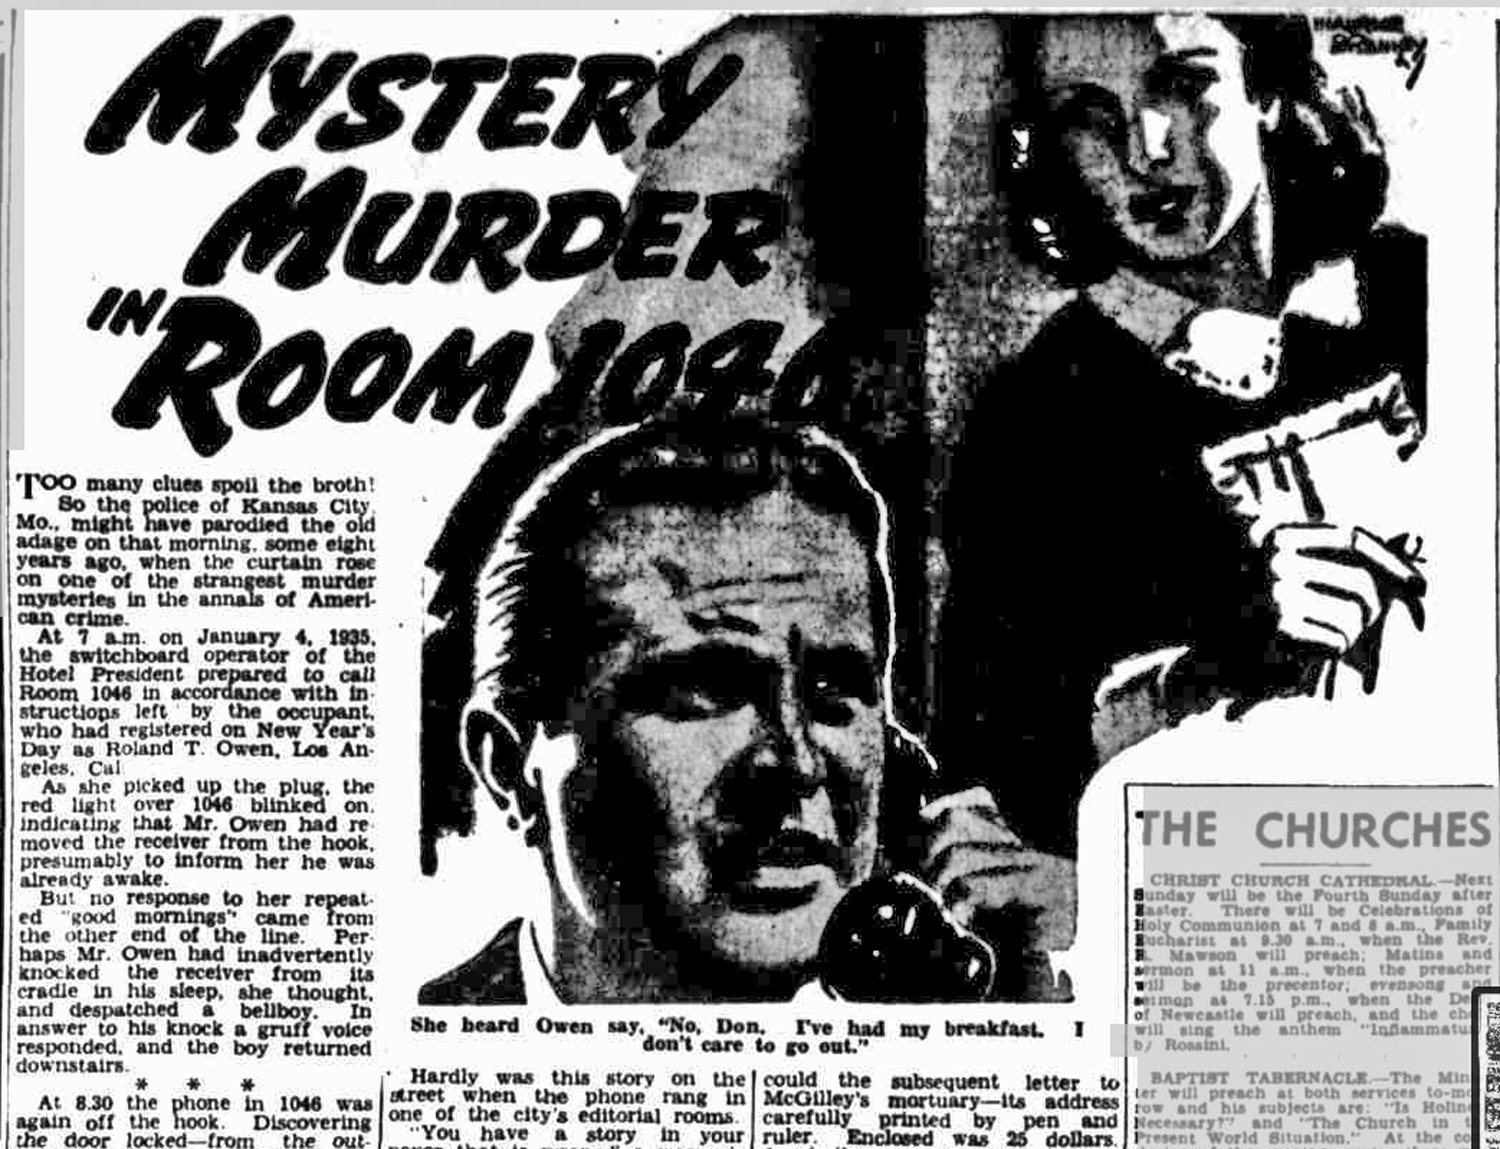 Roland T. Owen, and the horror in room 1046